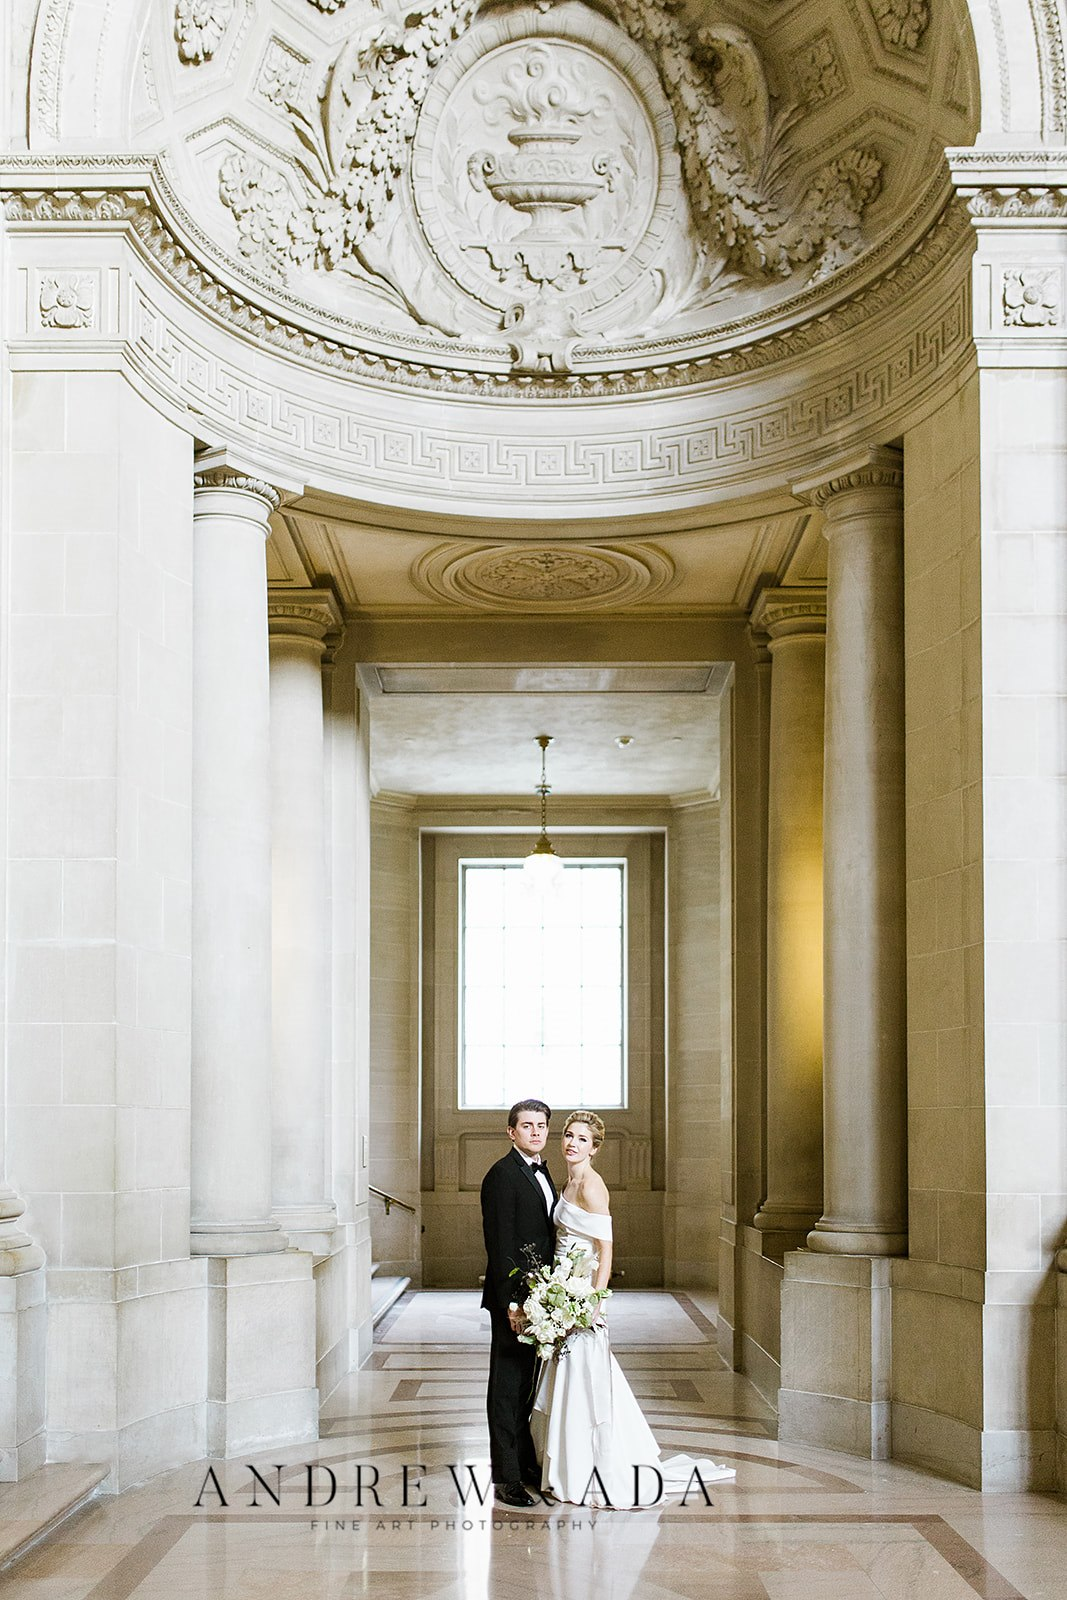 Romantic Elopement in Historic, Extravagant City Hall of San Fransisco